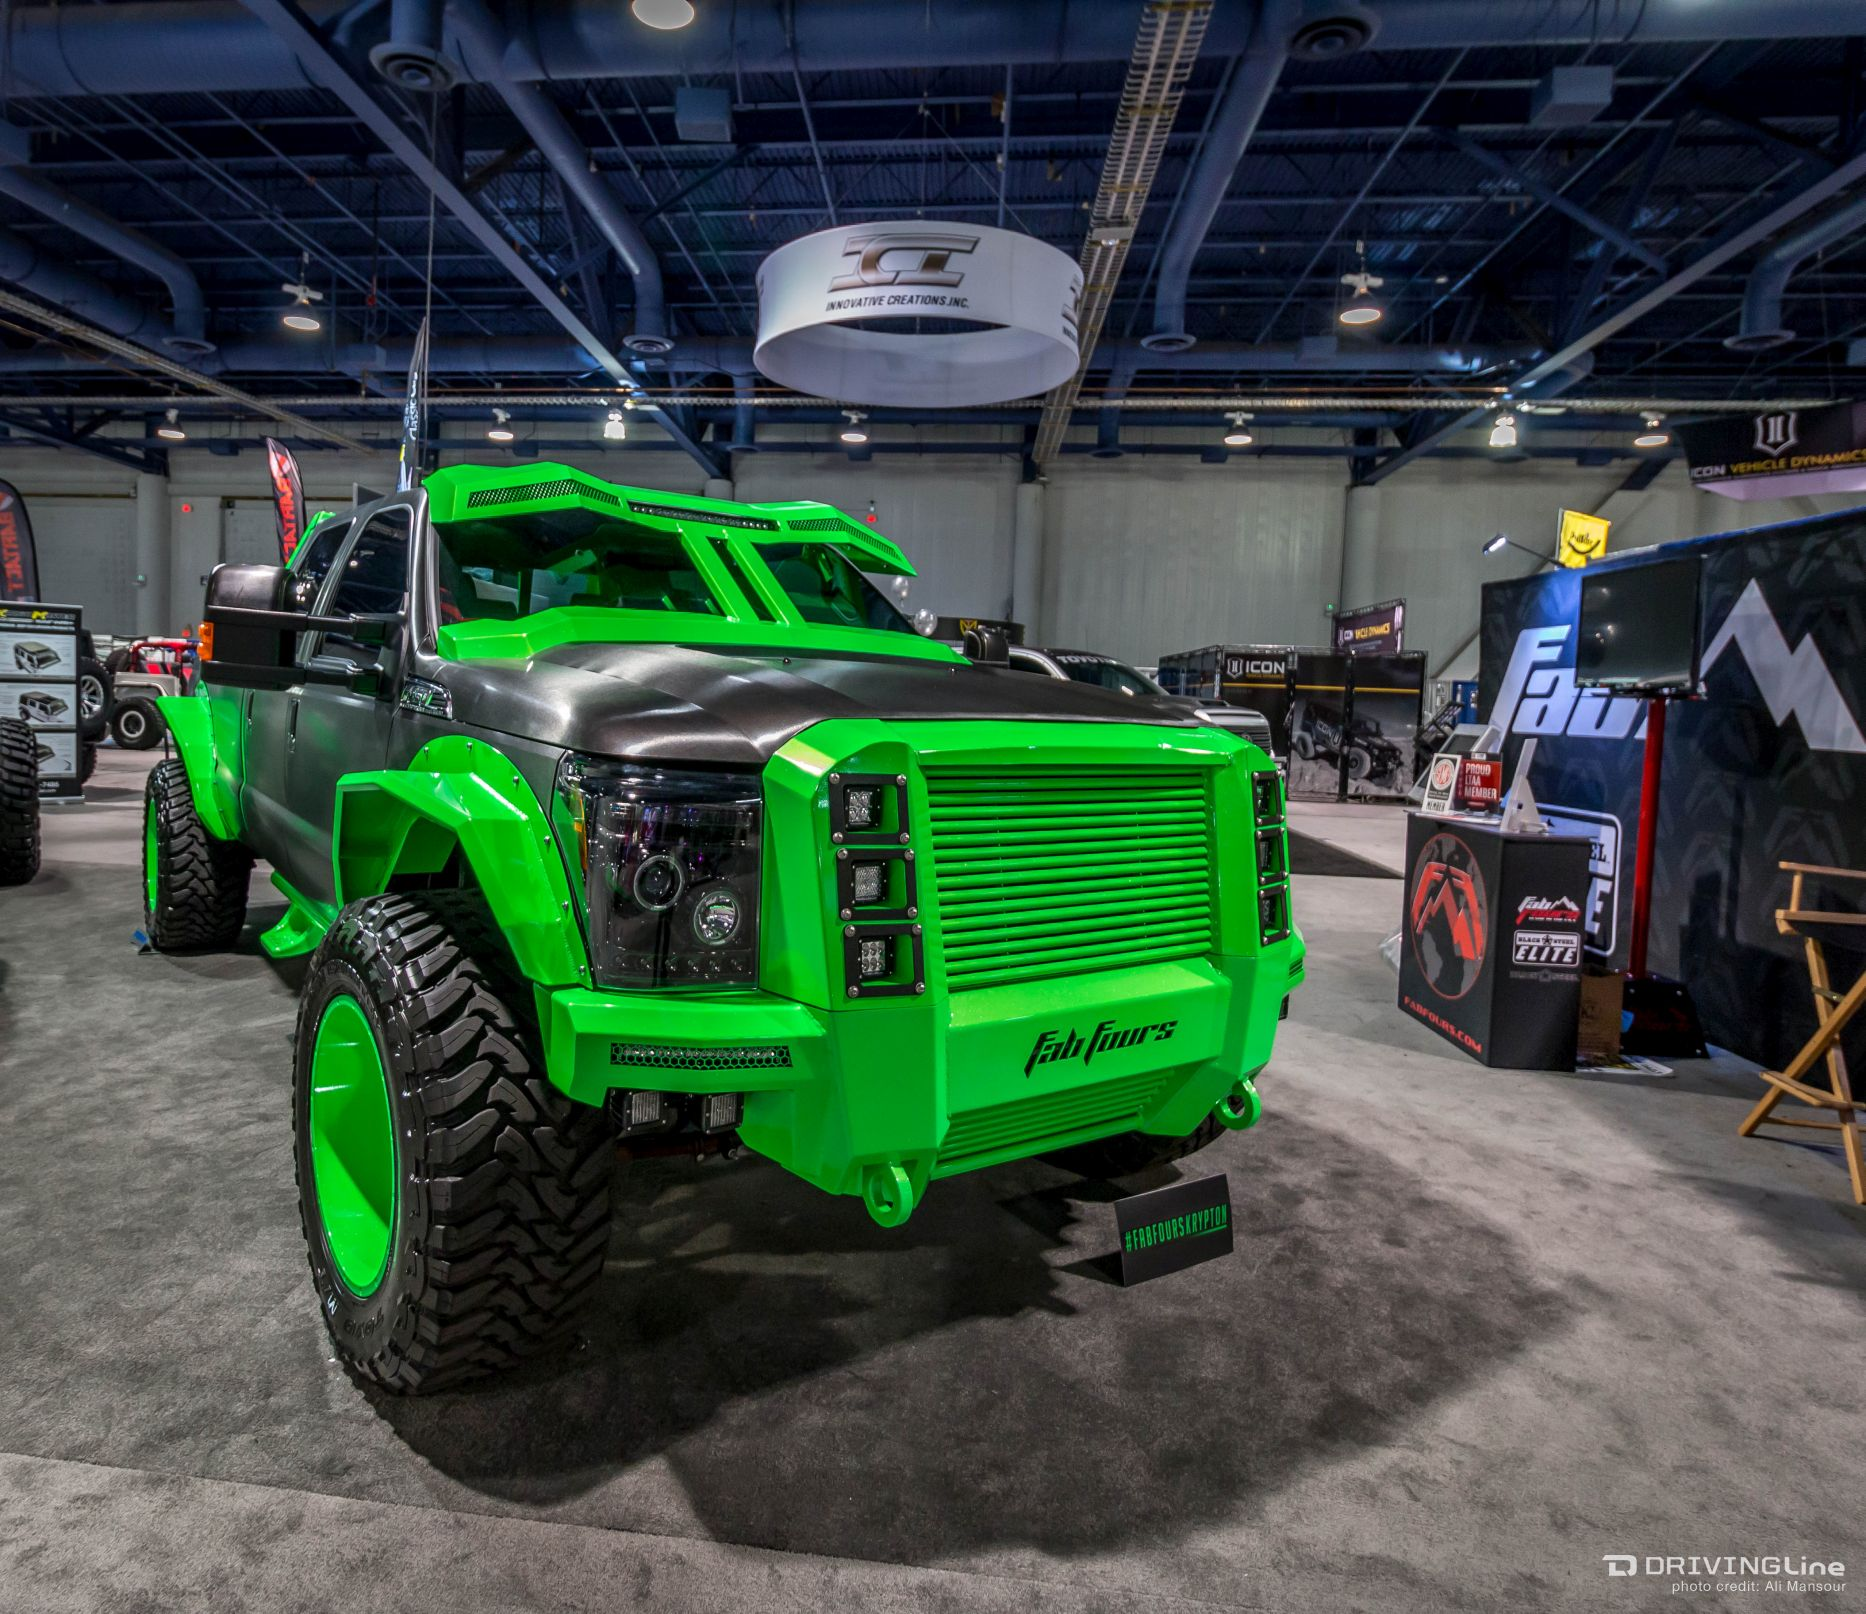 Ford Trucks: 20 Of The Hottest Ford Trucks From The 2015 SEMA Show